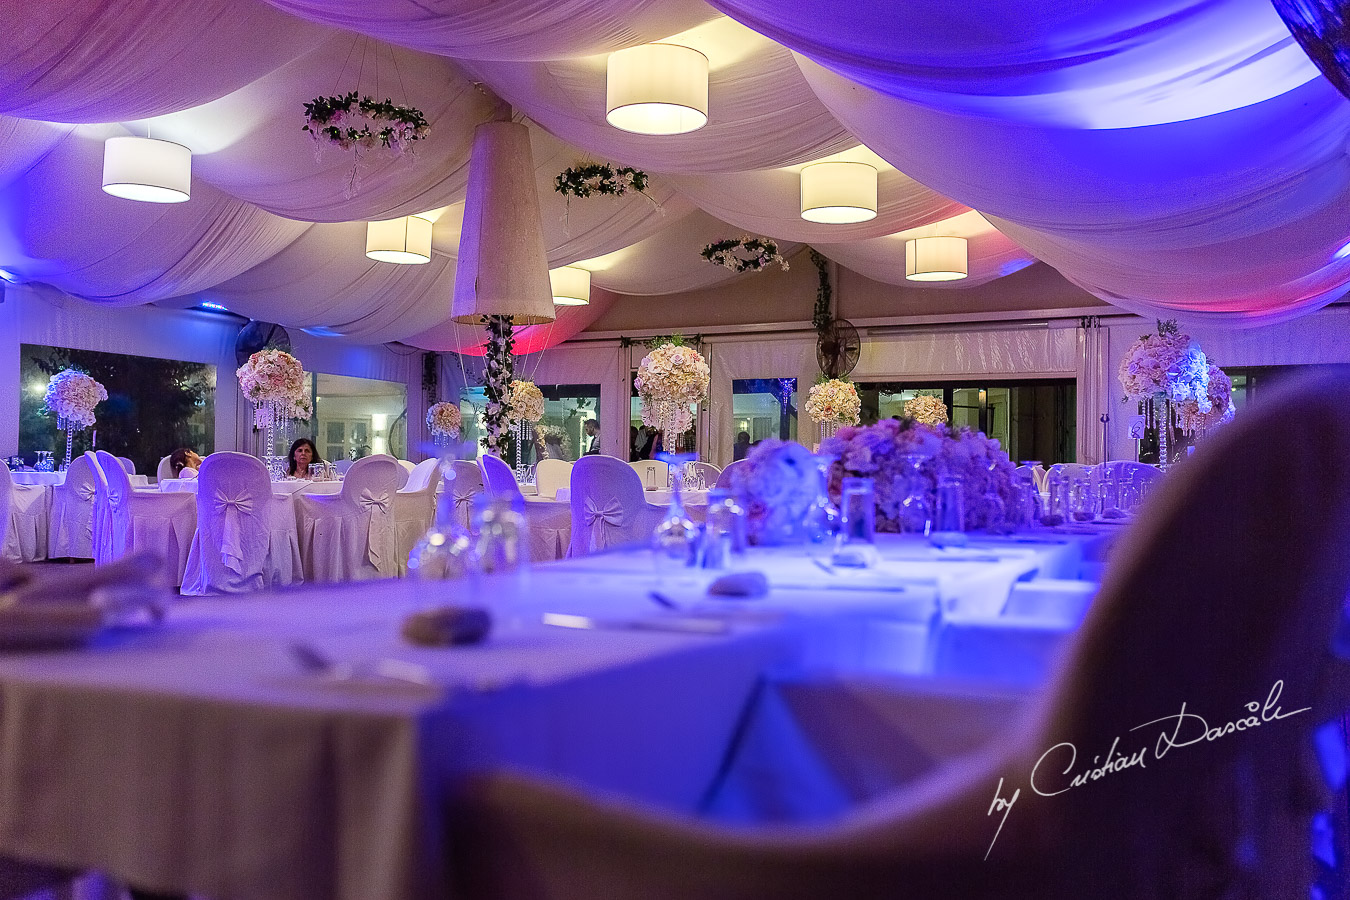 Venue details photographed at a wedding in Nicosia by Cyprus Wedding Photographer Cristian Dascalu